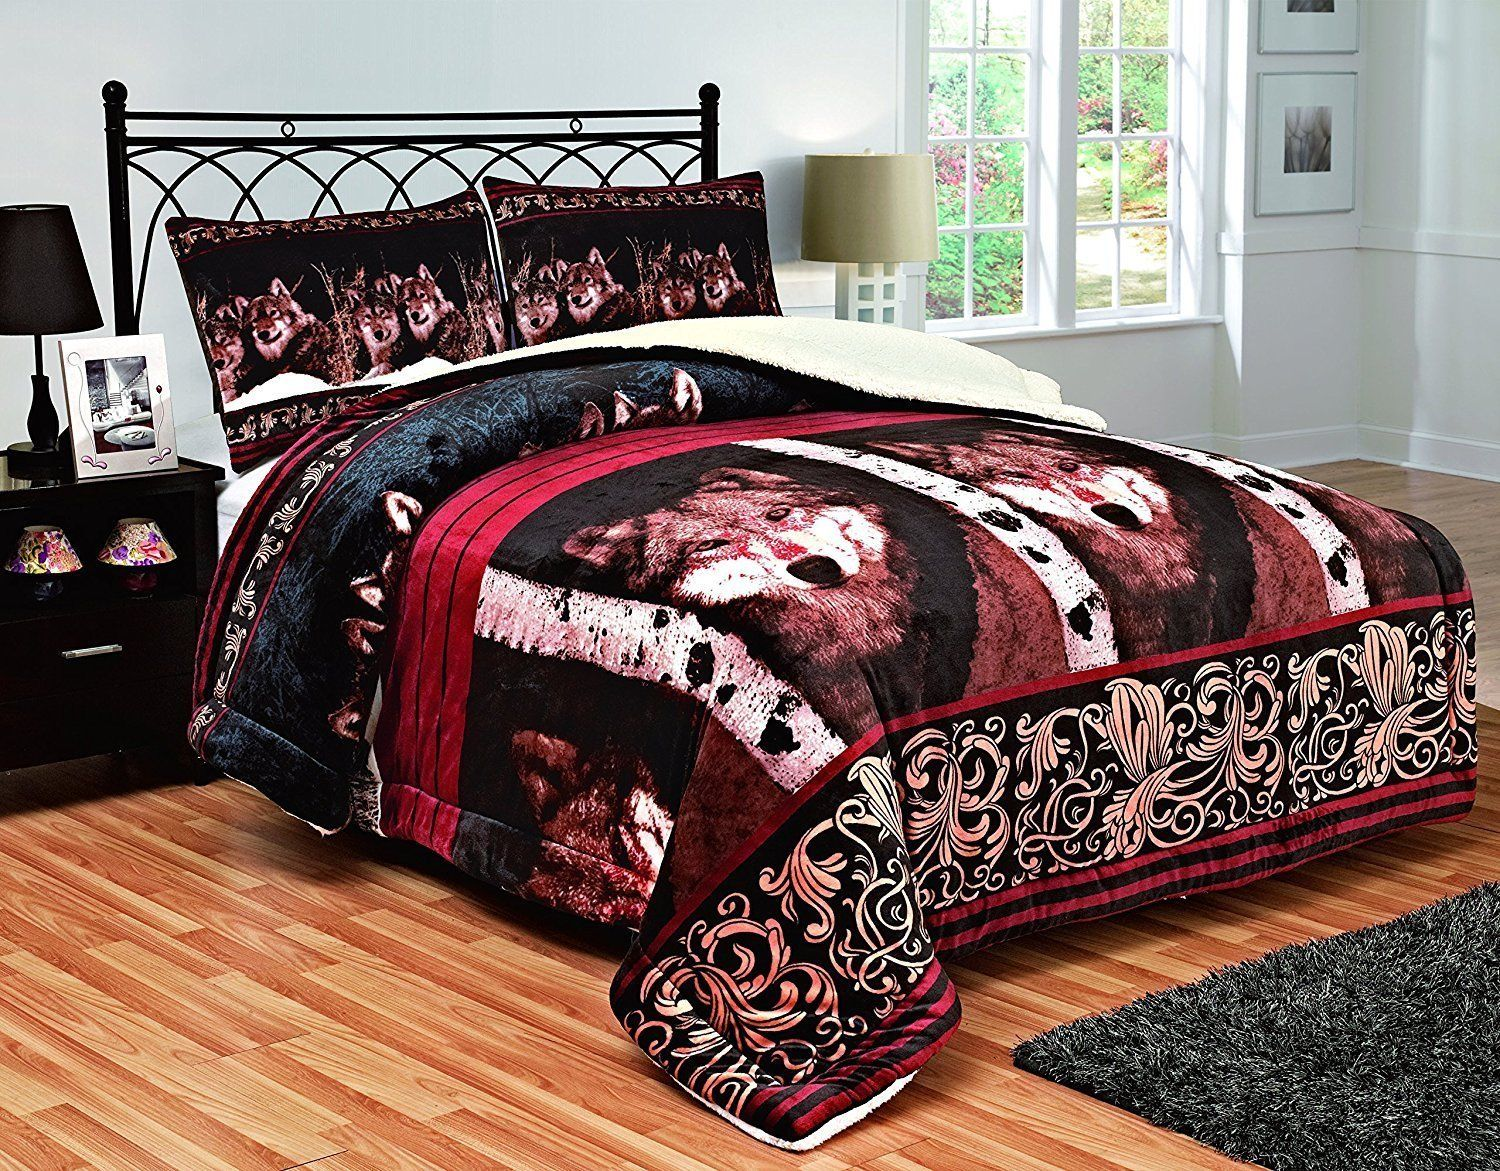 Fancy Linen 3pc King Blanket Sumptuously Soft Plush Wolf Face Burgundy Brown New by Fancy Linen